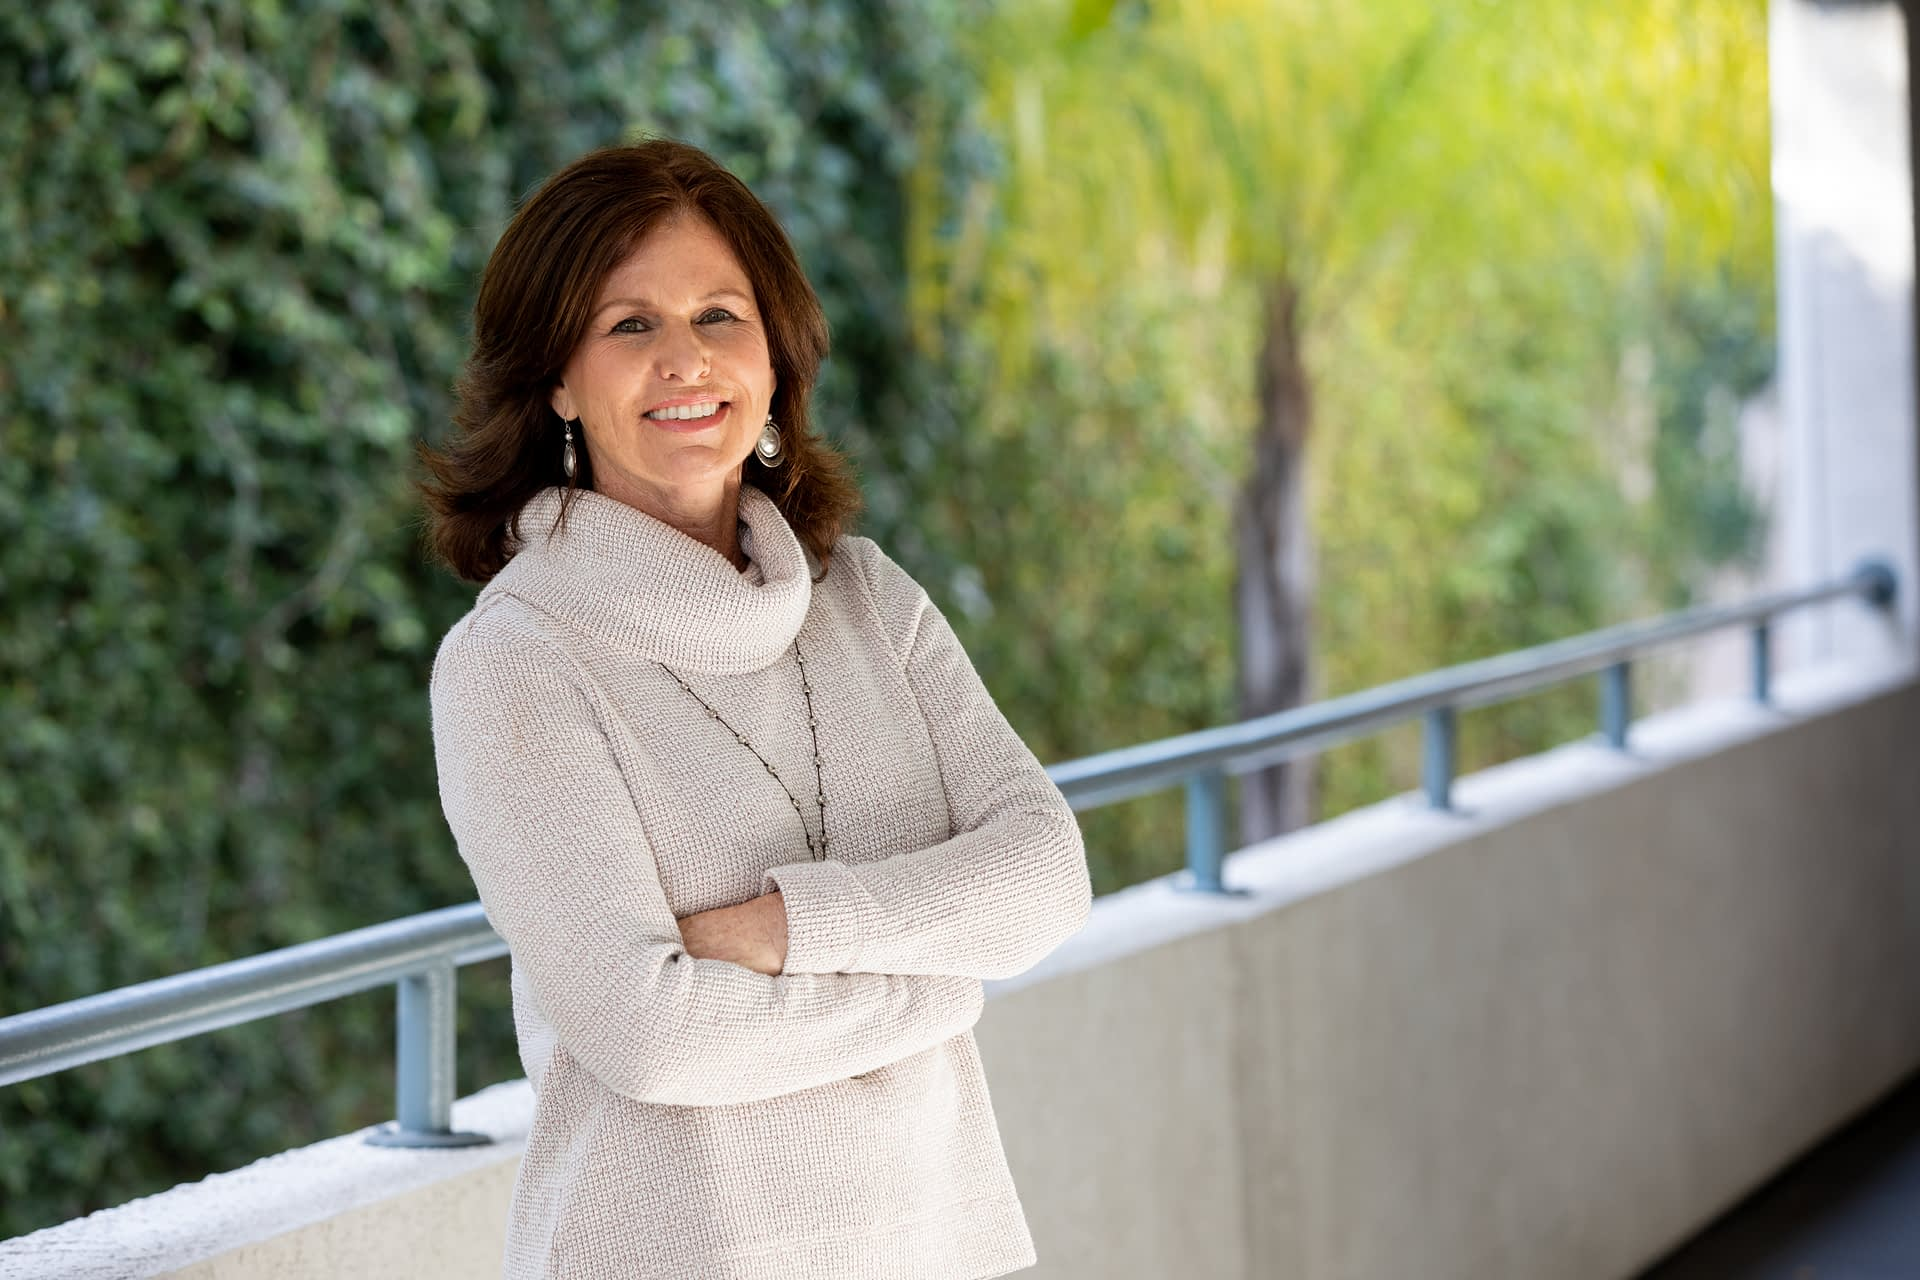 Mary Oral Surgery Assistant, Dana Point CA